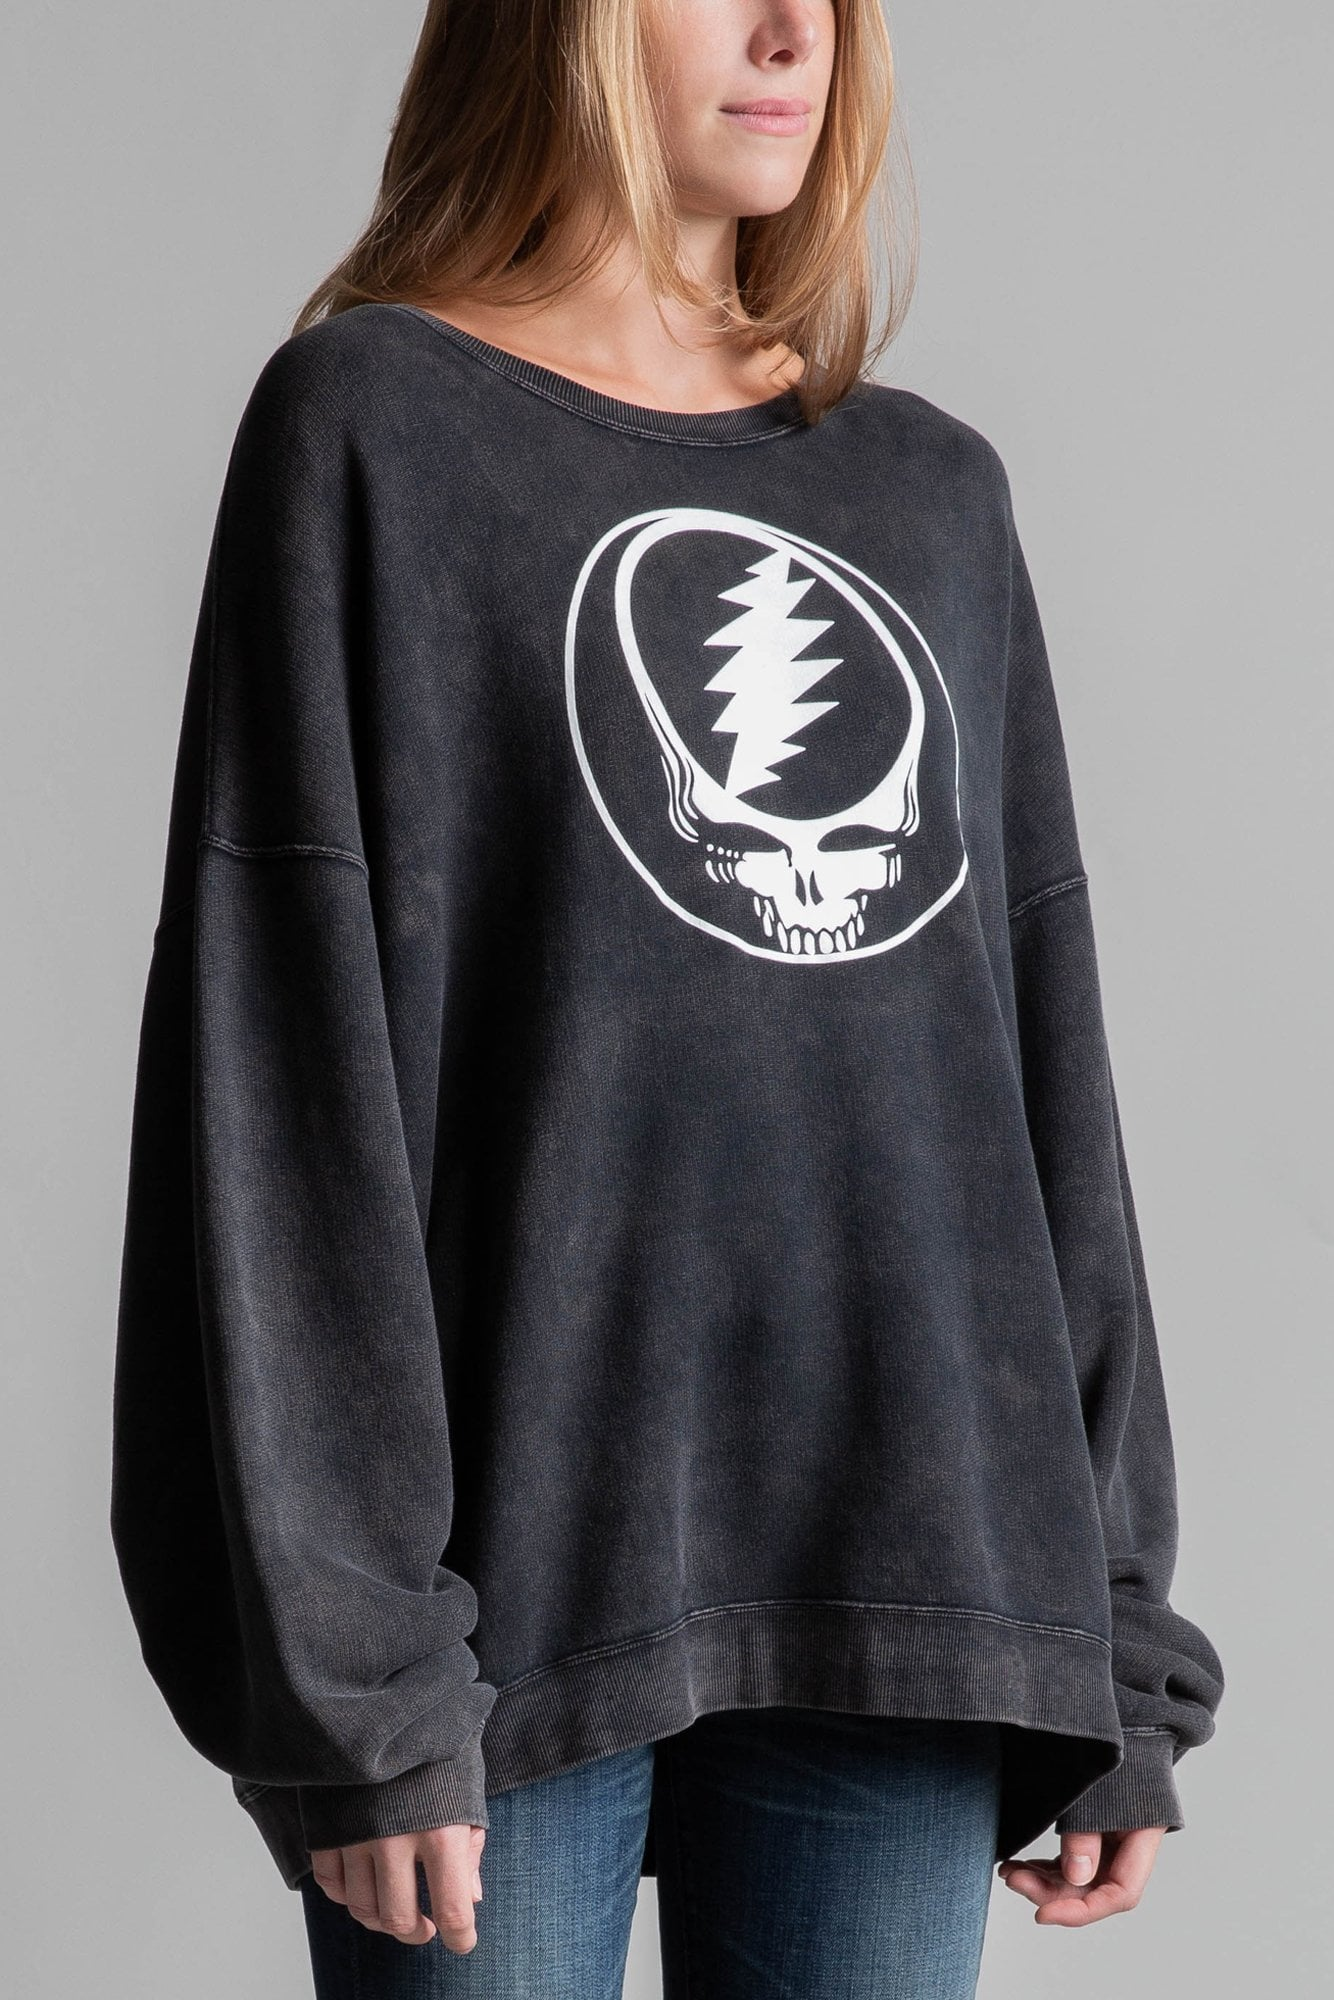 Steal Your Face Sweatshirt– Acid Black